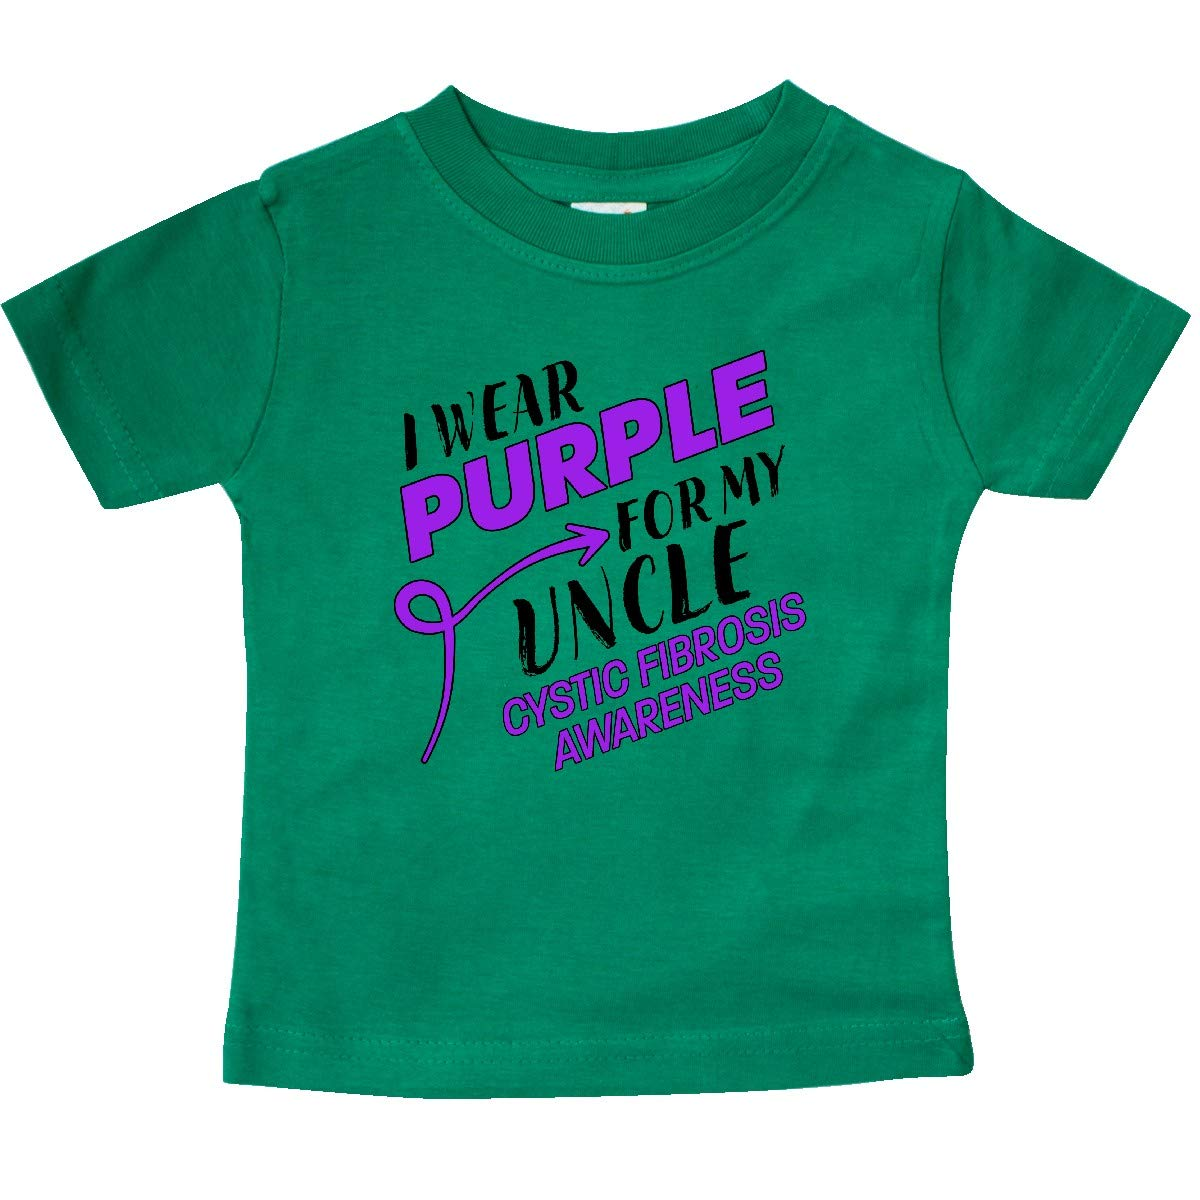 Cystic Fibrosis Awareness Baby T-Shirt inktastic I Wear Purple for My Uncle